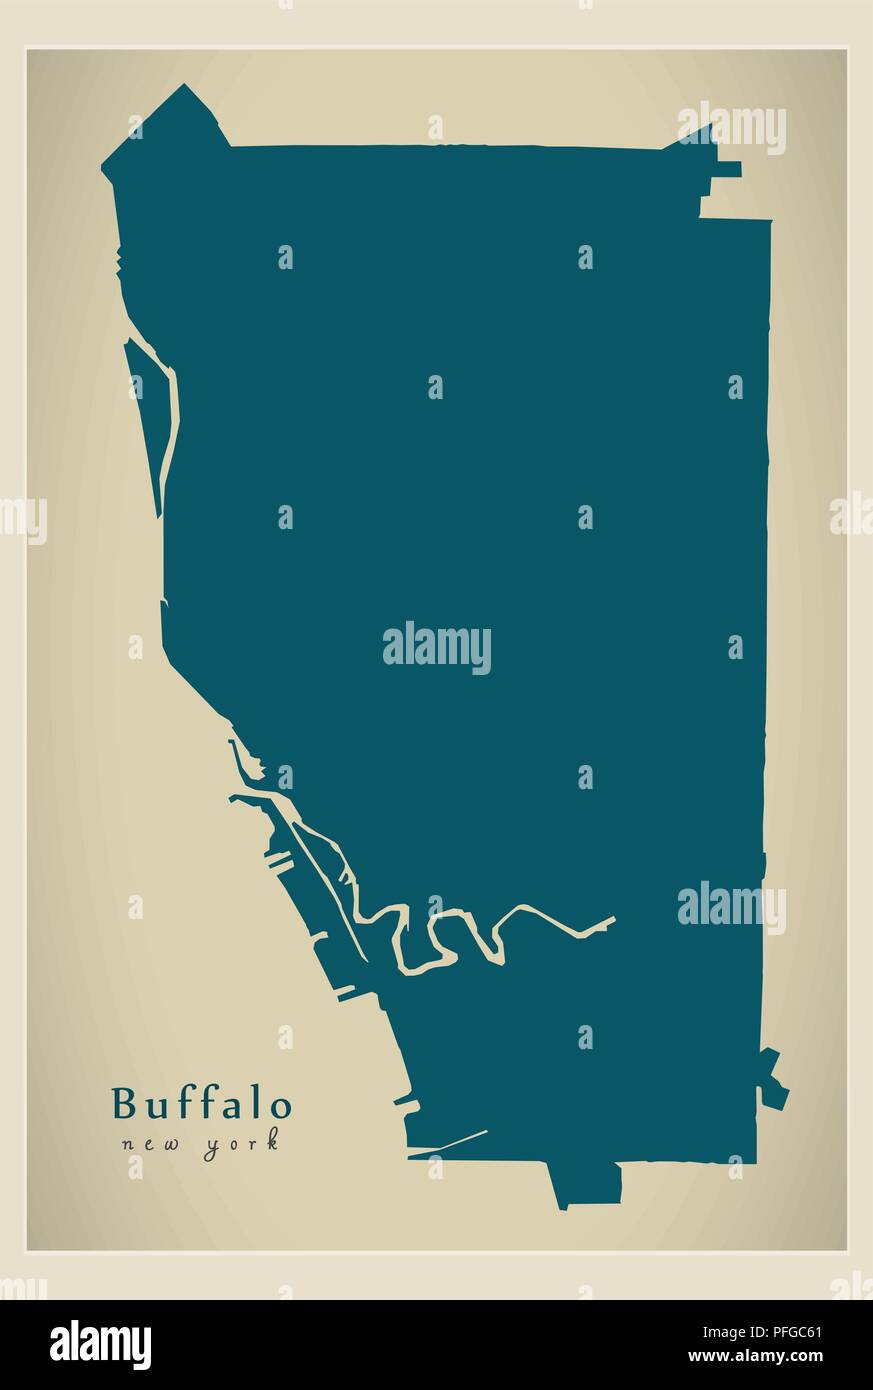 Modern City Map Buffalo New York City Of The Usa Stock Vector Art